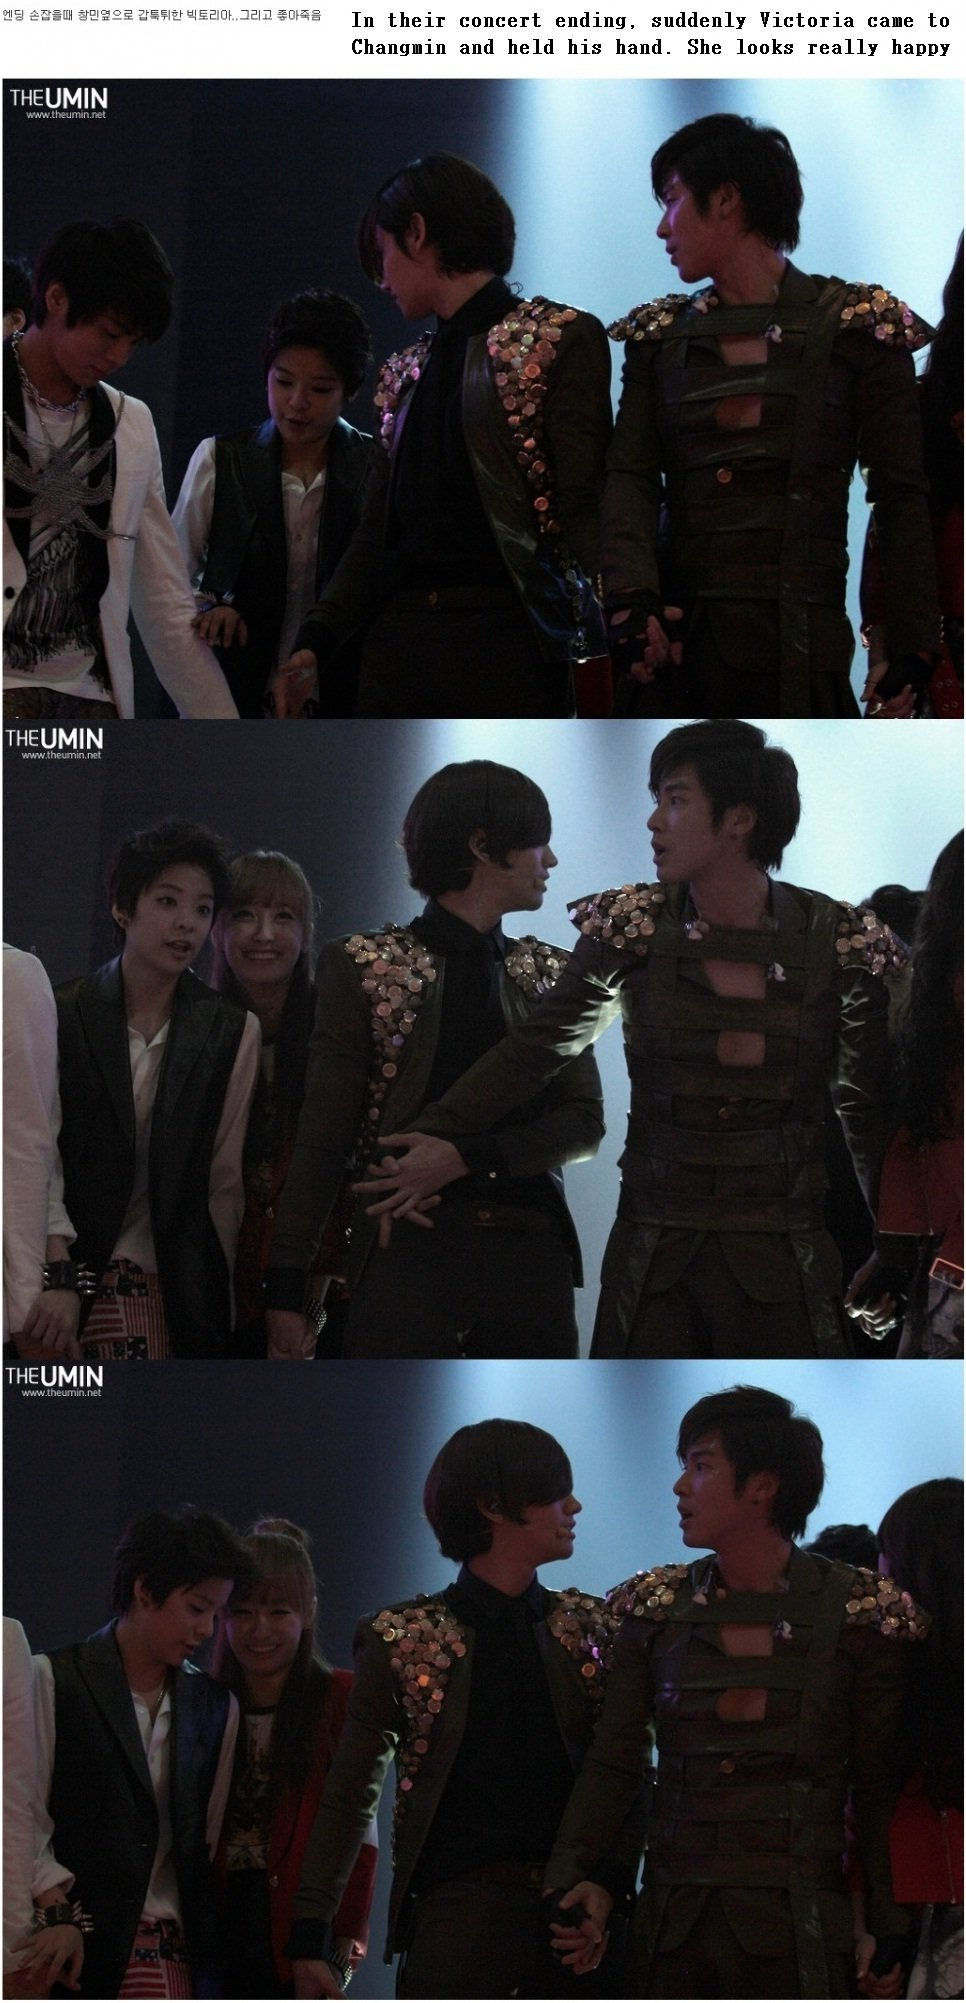 Changmin and victoria dating allkpop